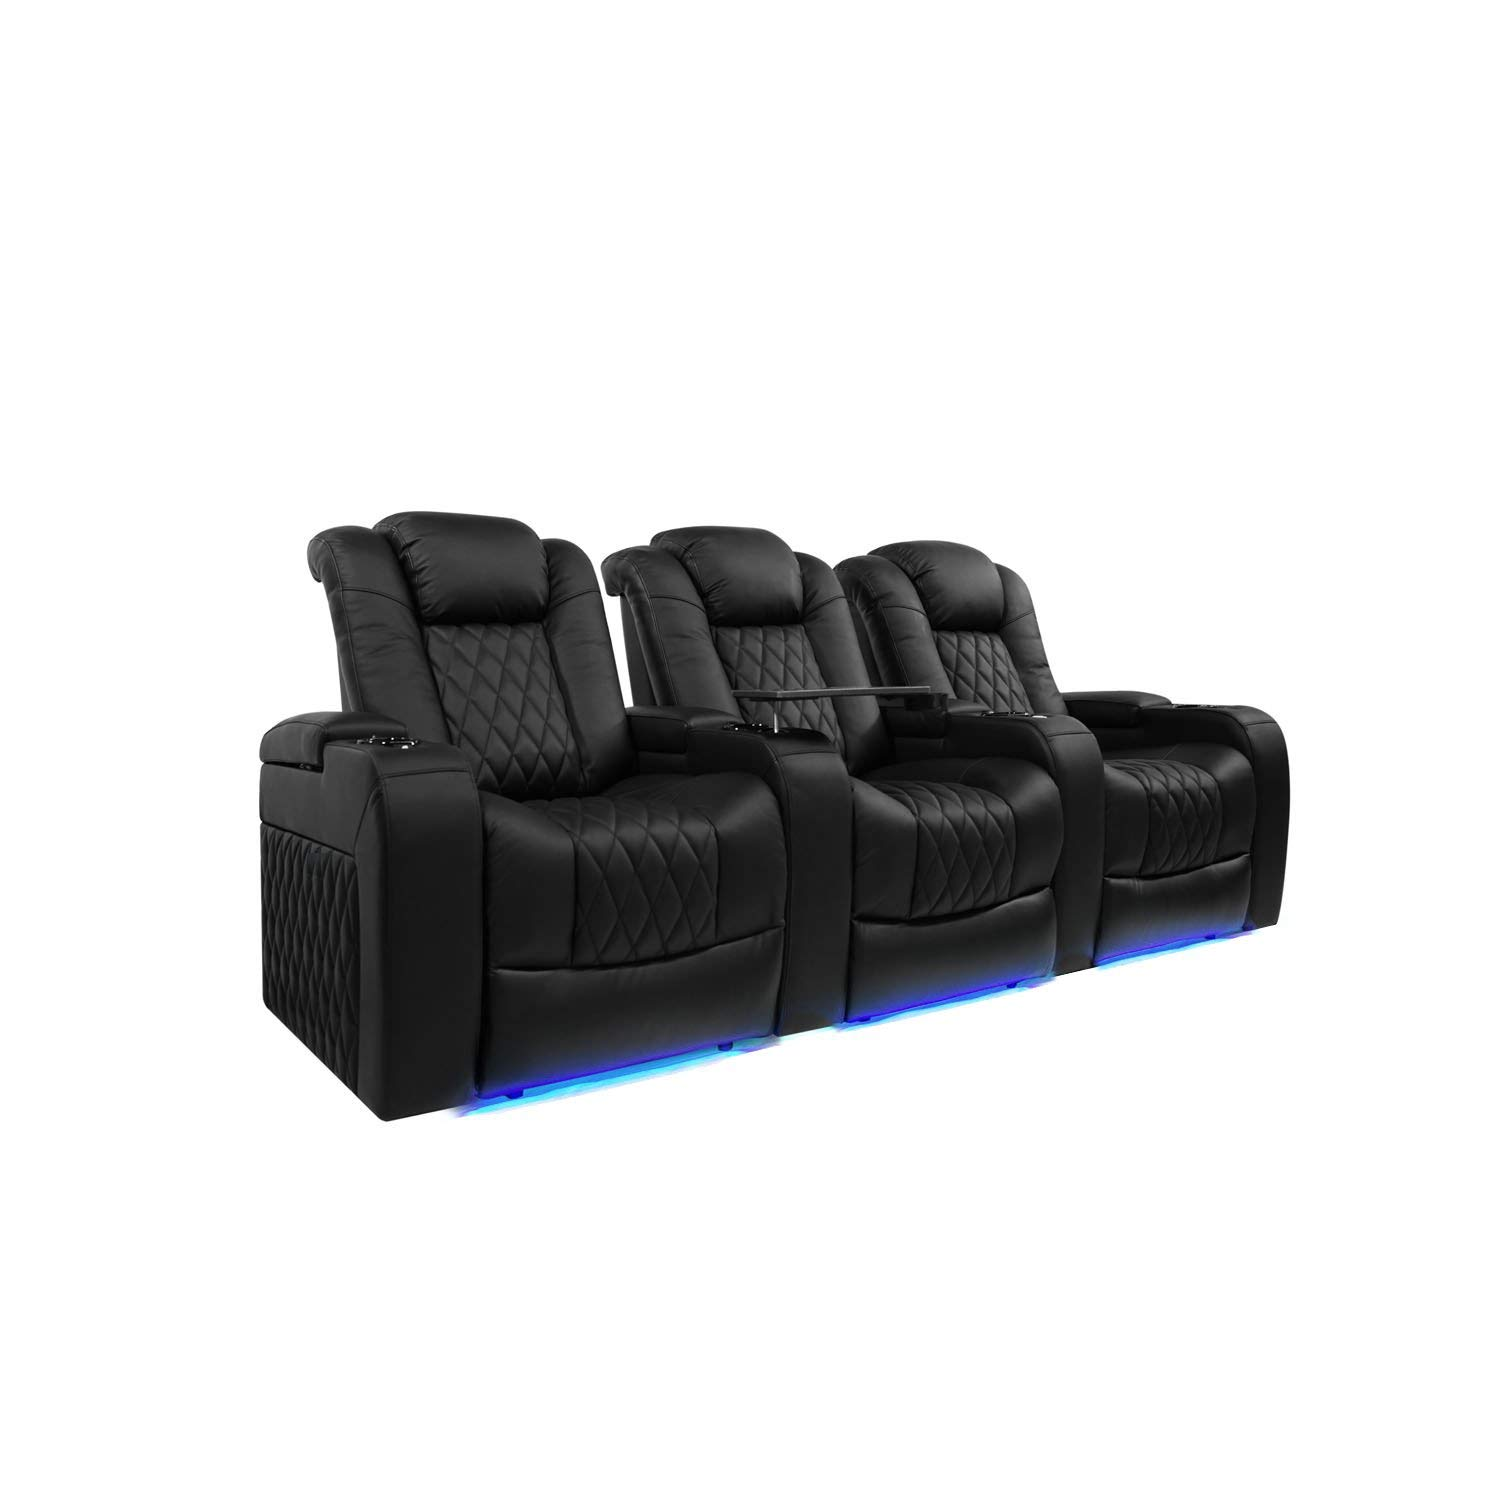 Valencia Tuscany Top Grain Nappa Leather Power Reclining, Power Lumbar, Power Headrest Home Theater Seating (Row of 3, Black) by Valencia Seating